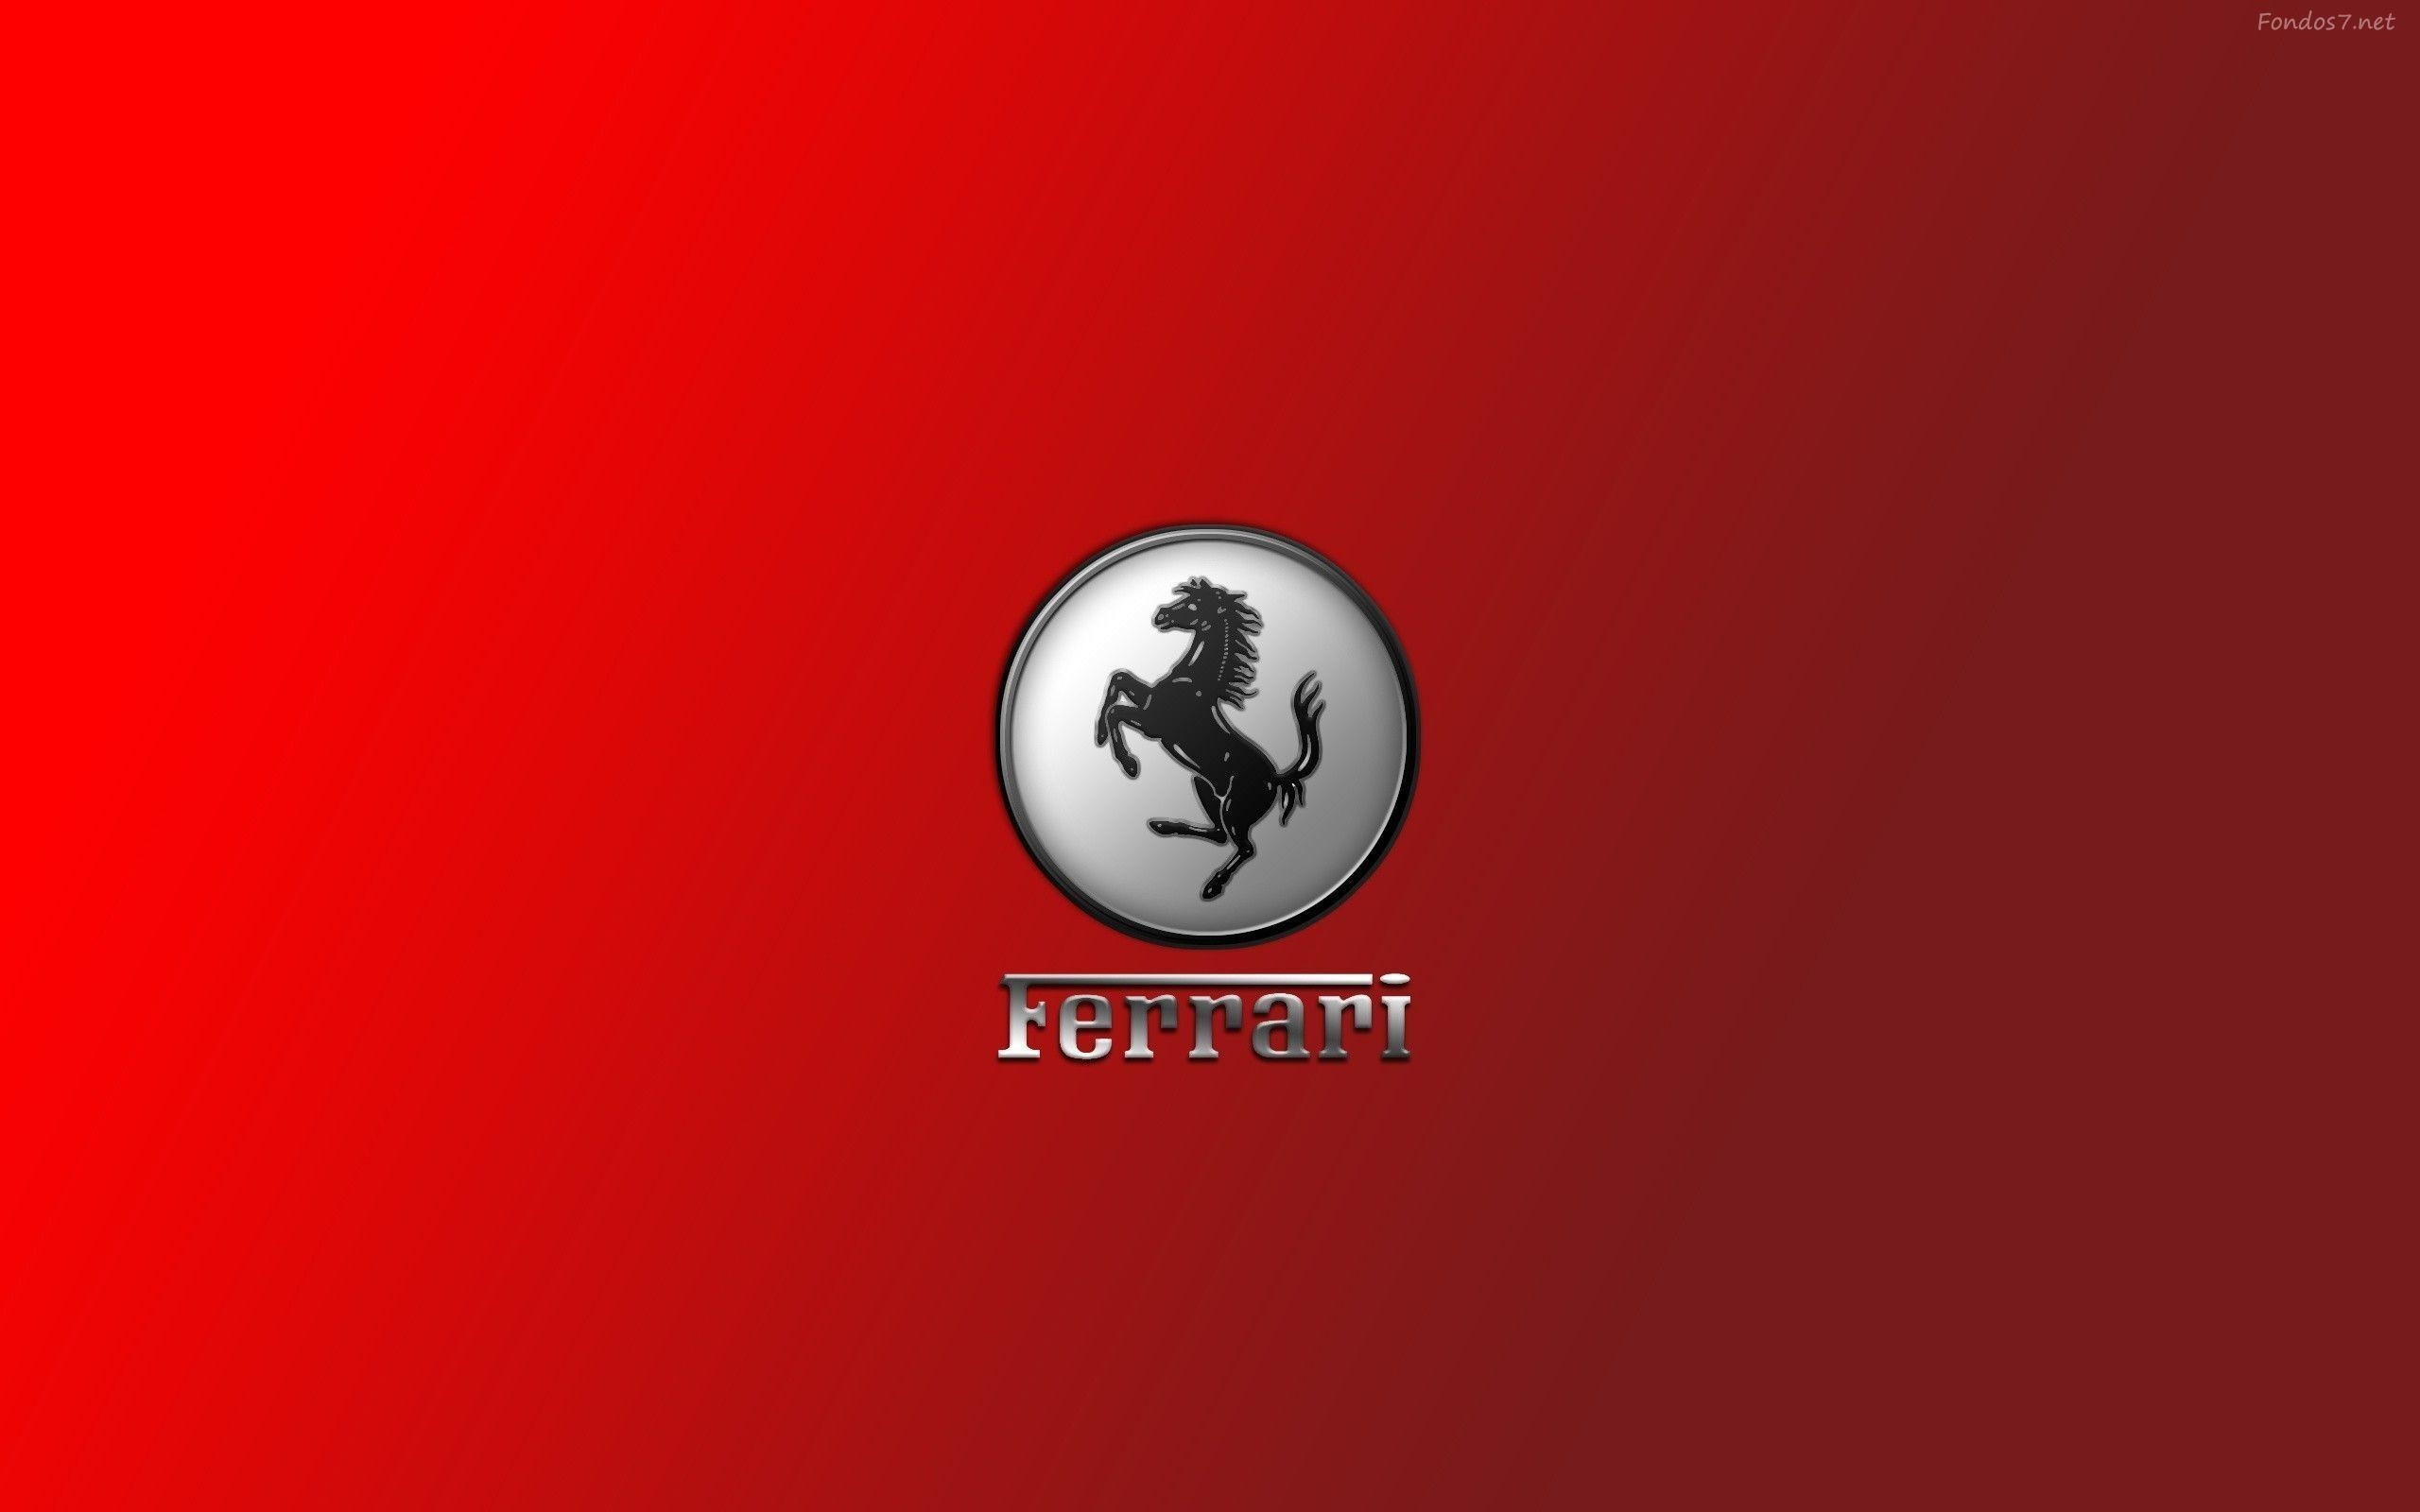 Red Gucci Logo Wallpaper Fitrini s Wallpaper Source · Gucci Logo Wallpapers 84 background pictures